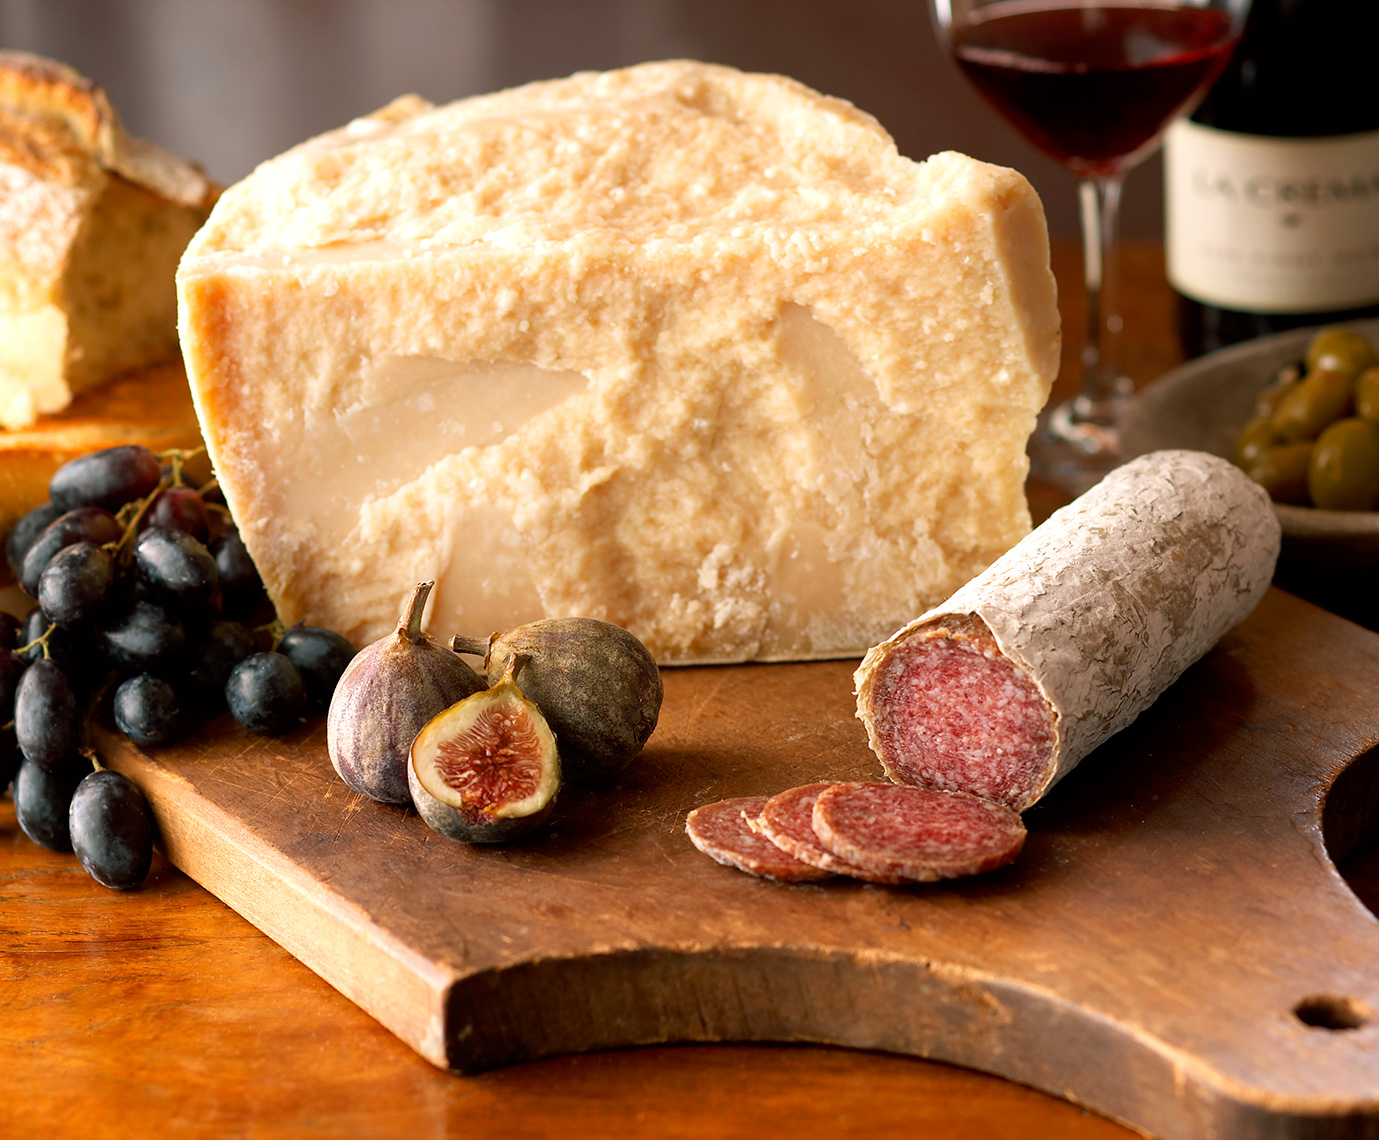 Parmigiano Reggiano, Salami and Fruit